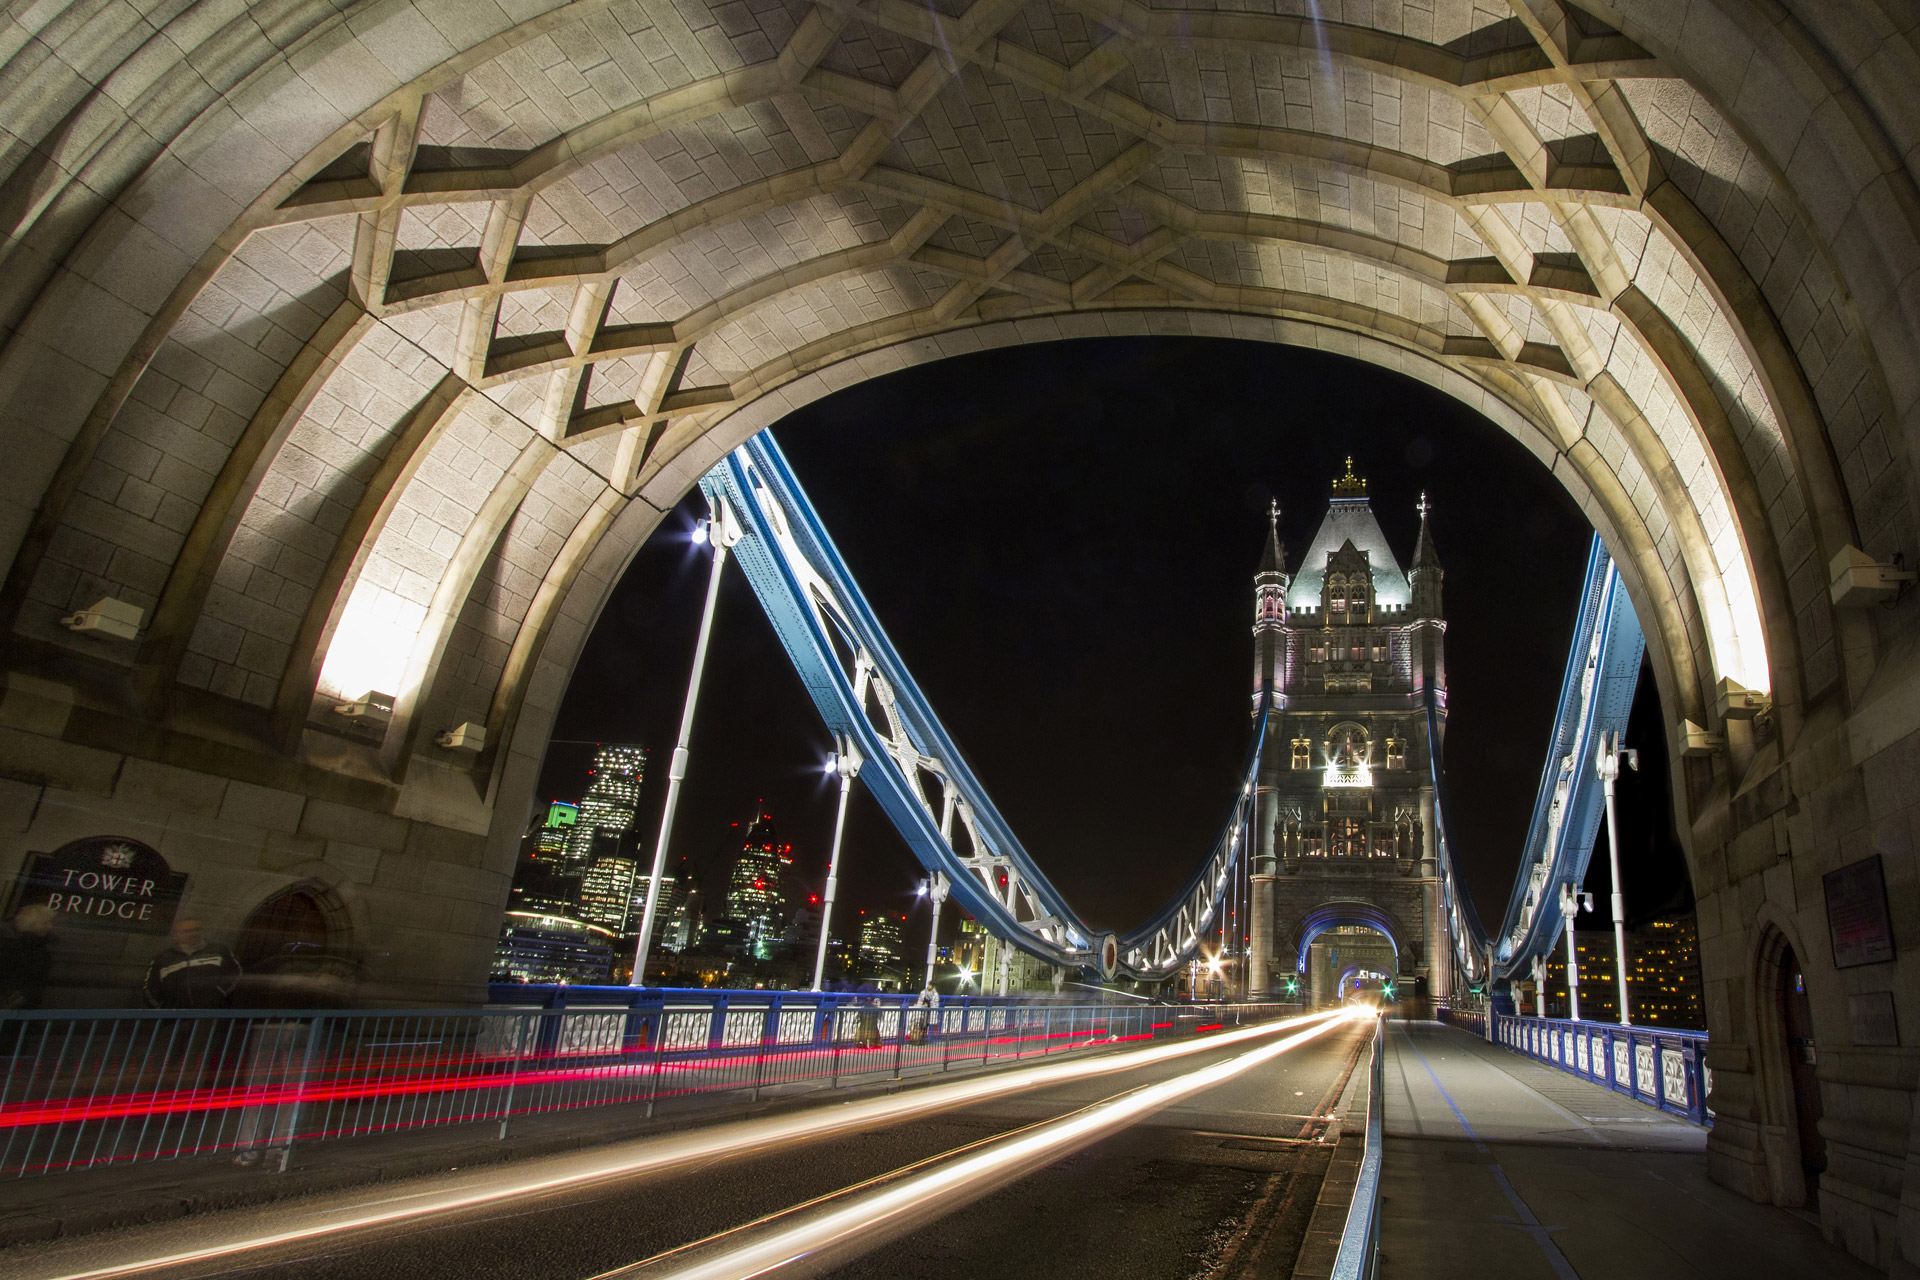 Tower Bridge at night, London, UK.